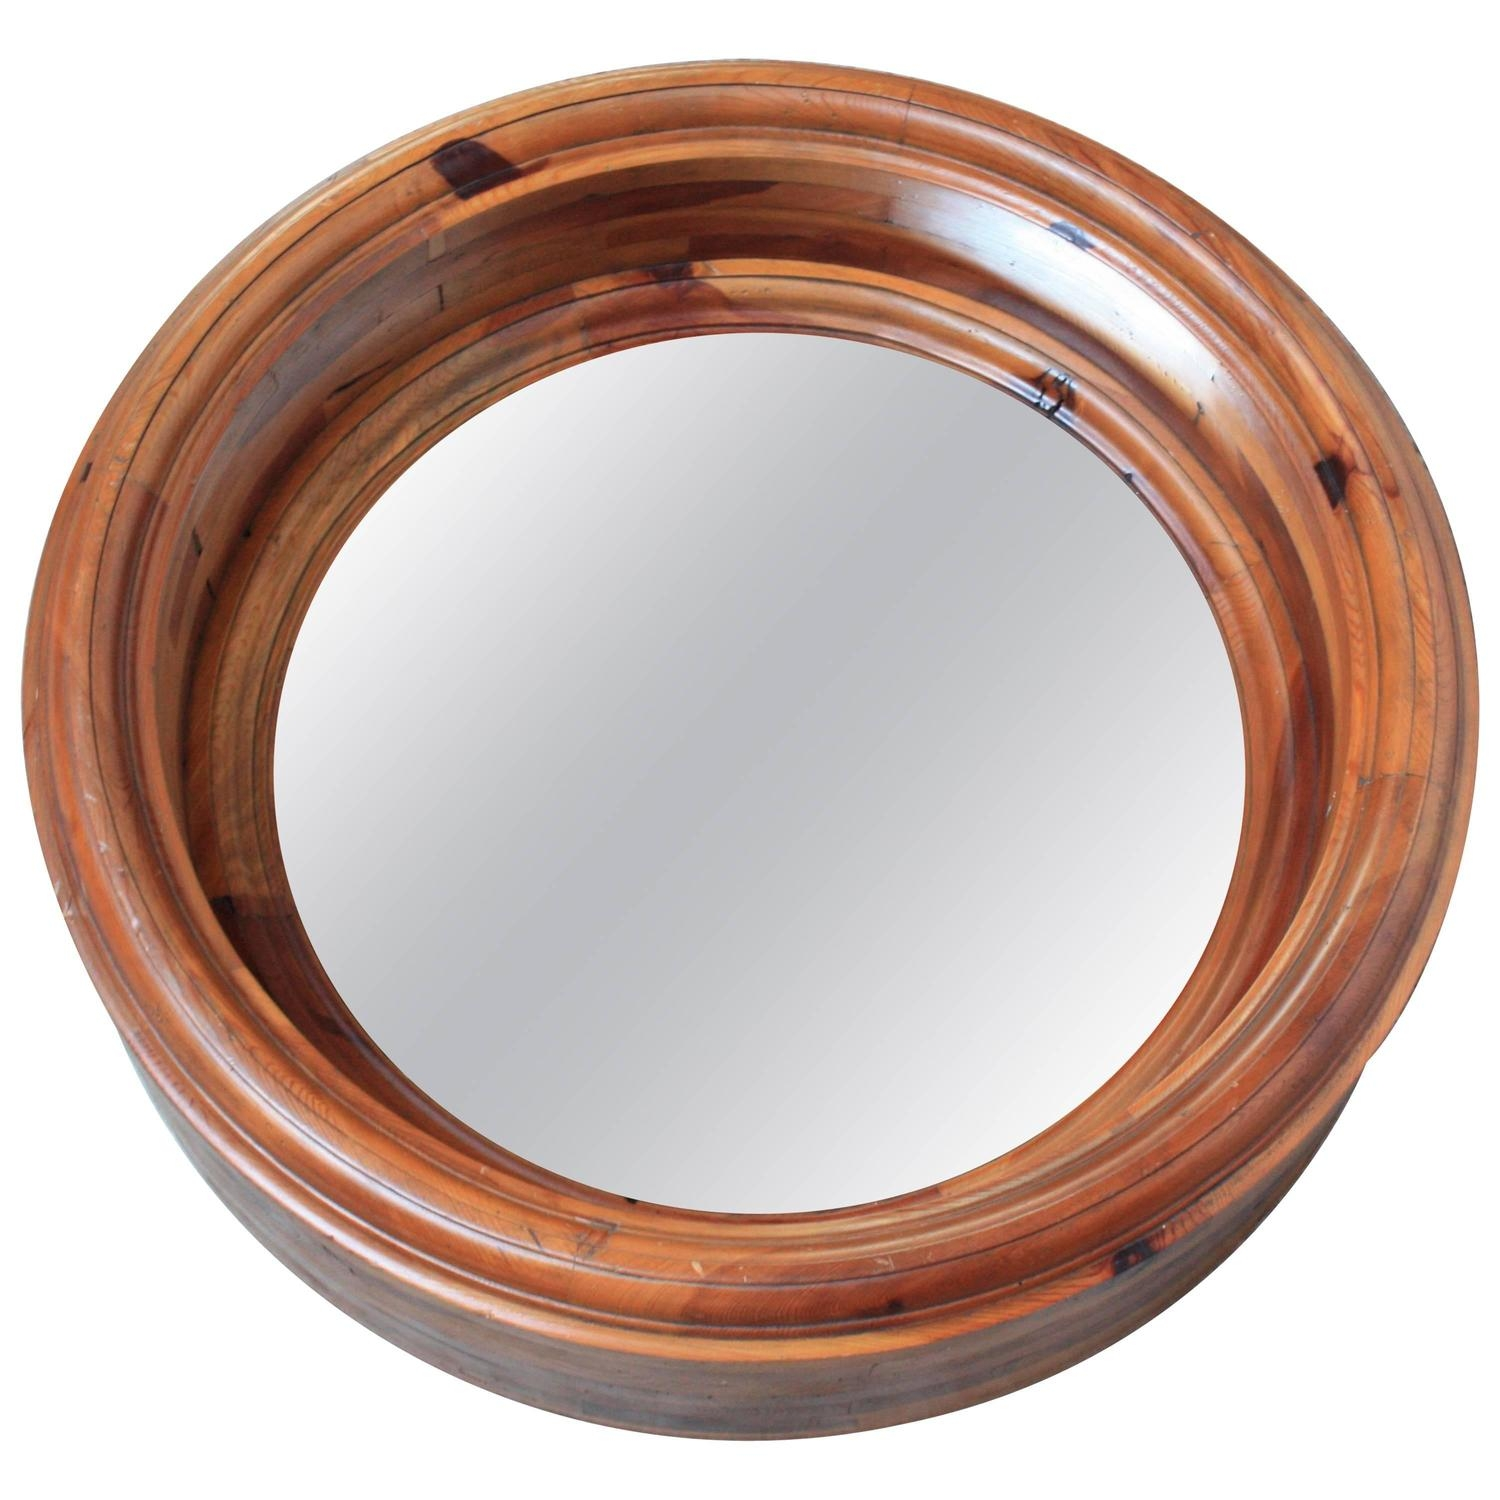 Large Wooden Porthole Mirror Ralph Lauren For Sale At 1stdibs With Regard To Porthole Style Mirrors (Image 8 of 15)